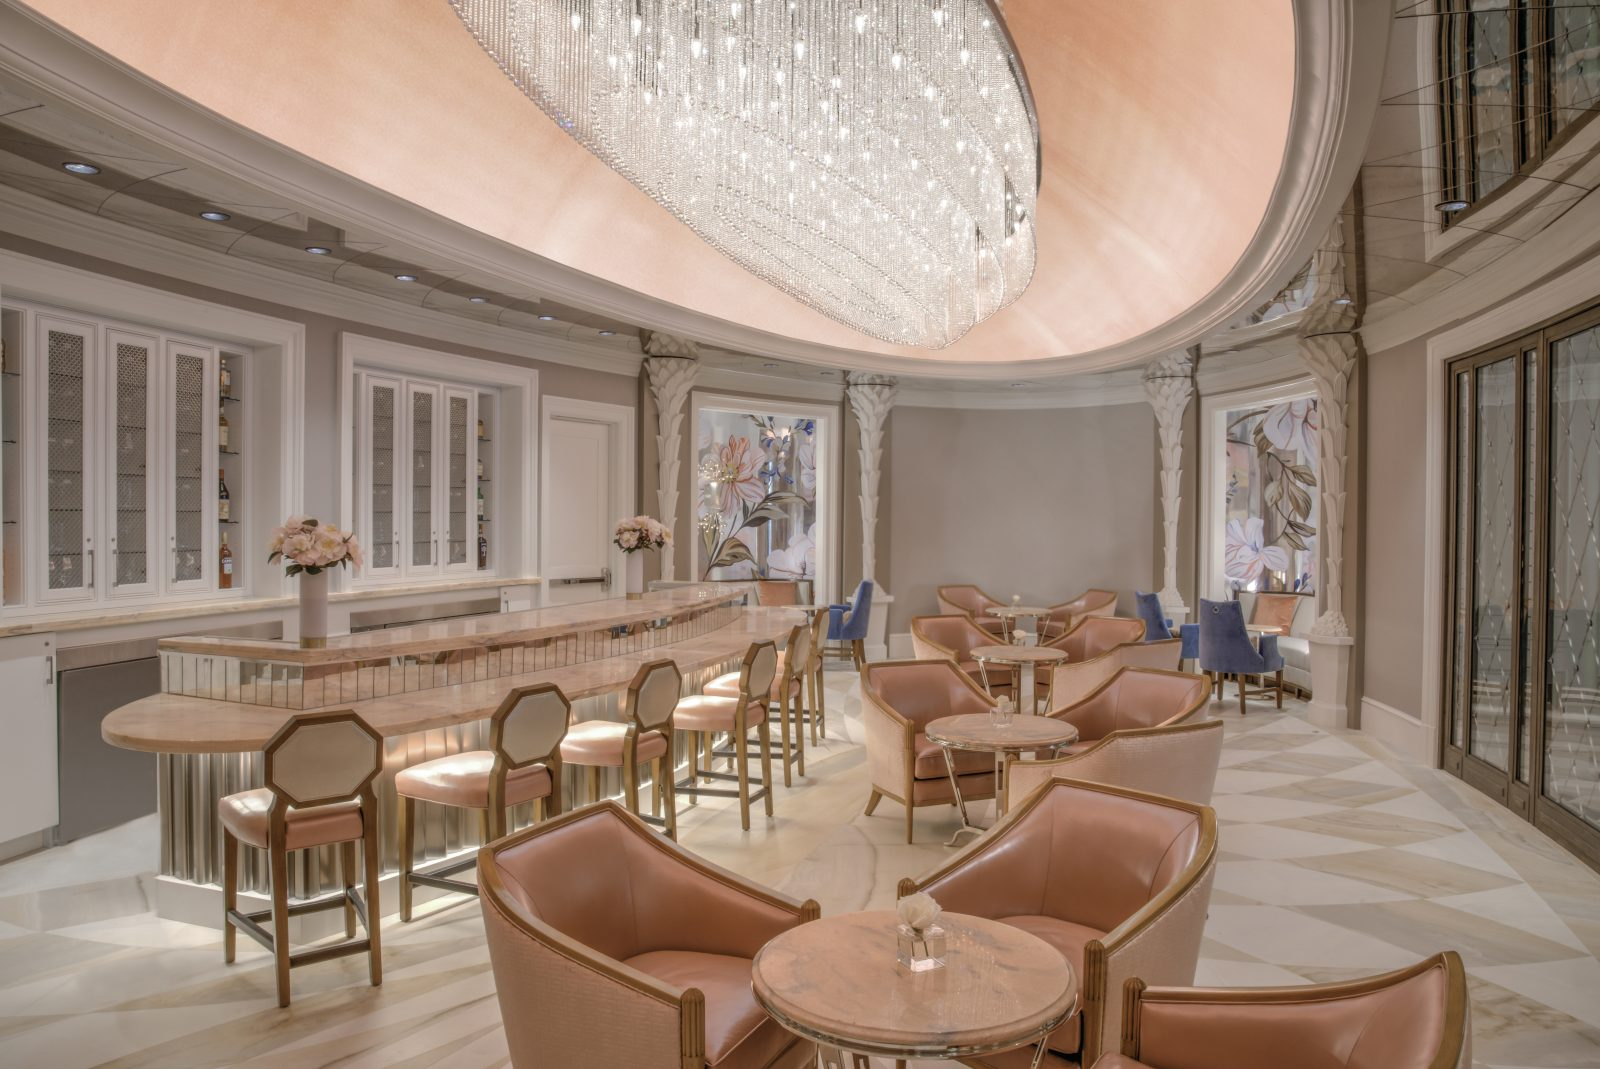 Hotel Bennett Camellias champagne luxury lounge pink room chandeliers